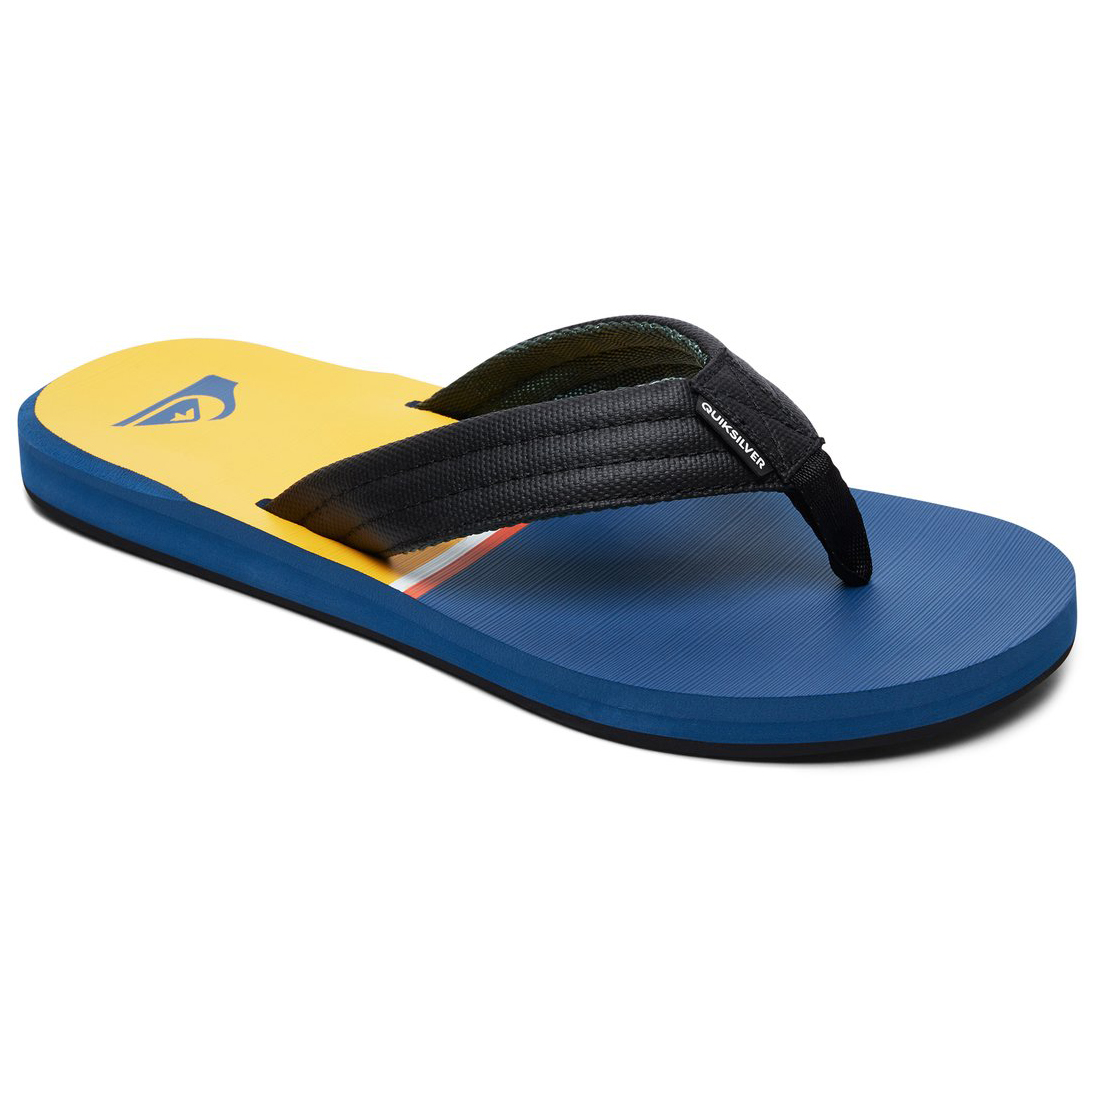 Quiksilver Men's Carver Sandals - Blue, 12